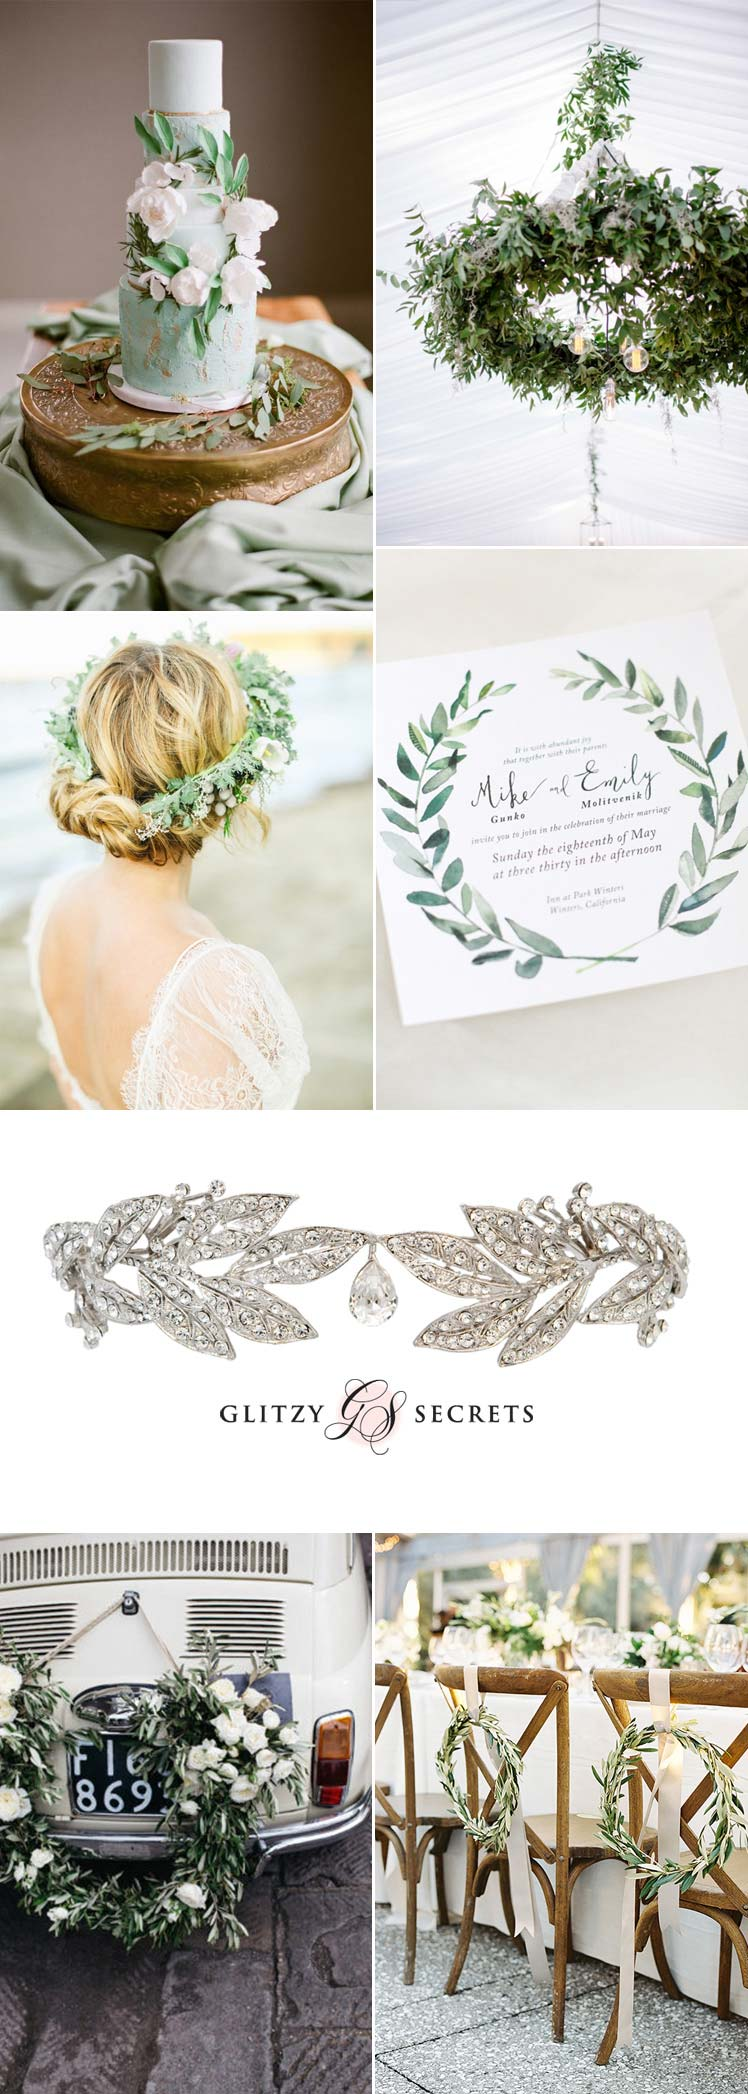 laurel leaf wedding ideas